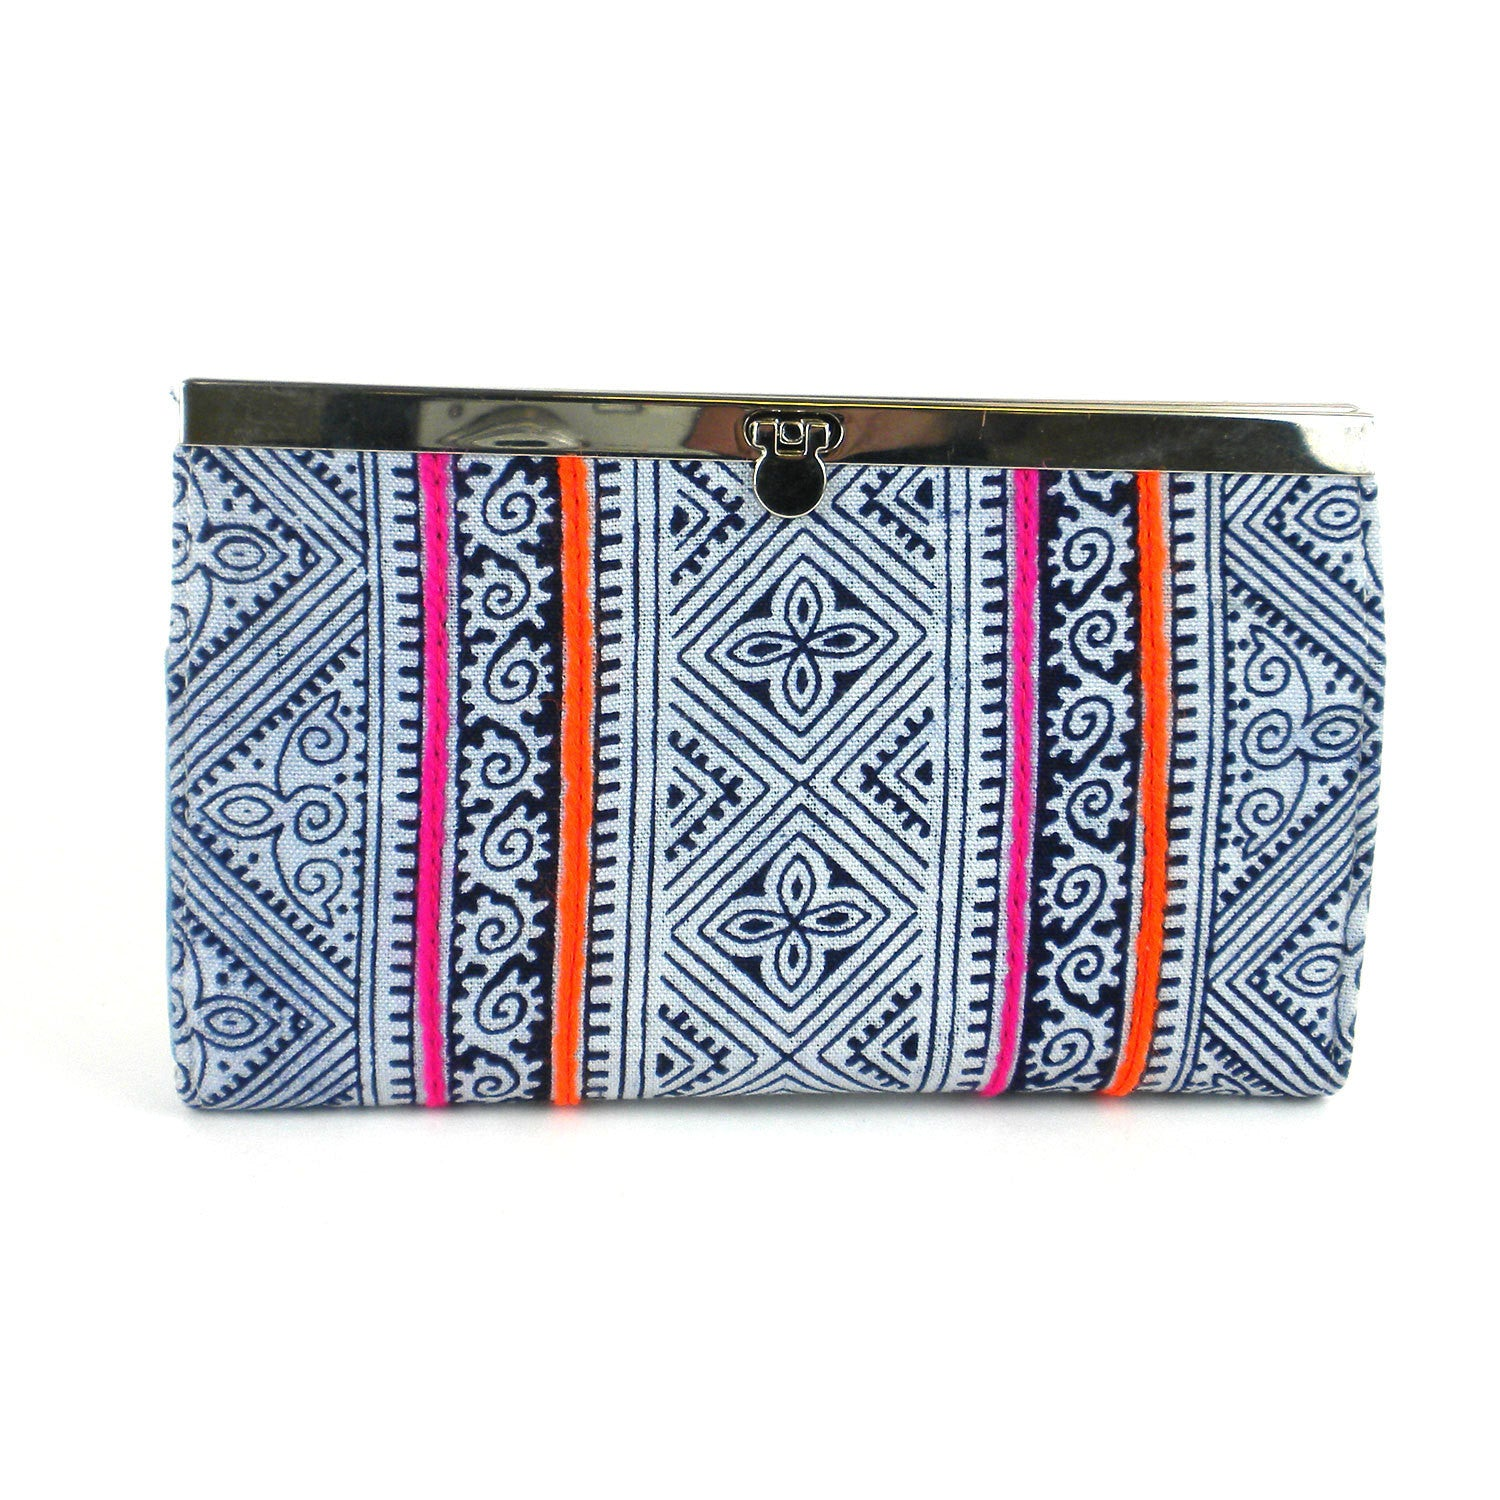 Indigo Ethnic Hmong Clutch - Global Groove (P)